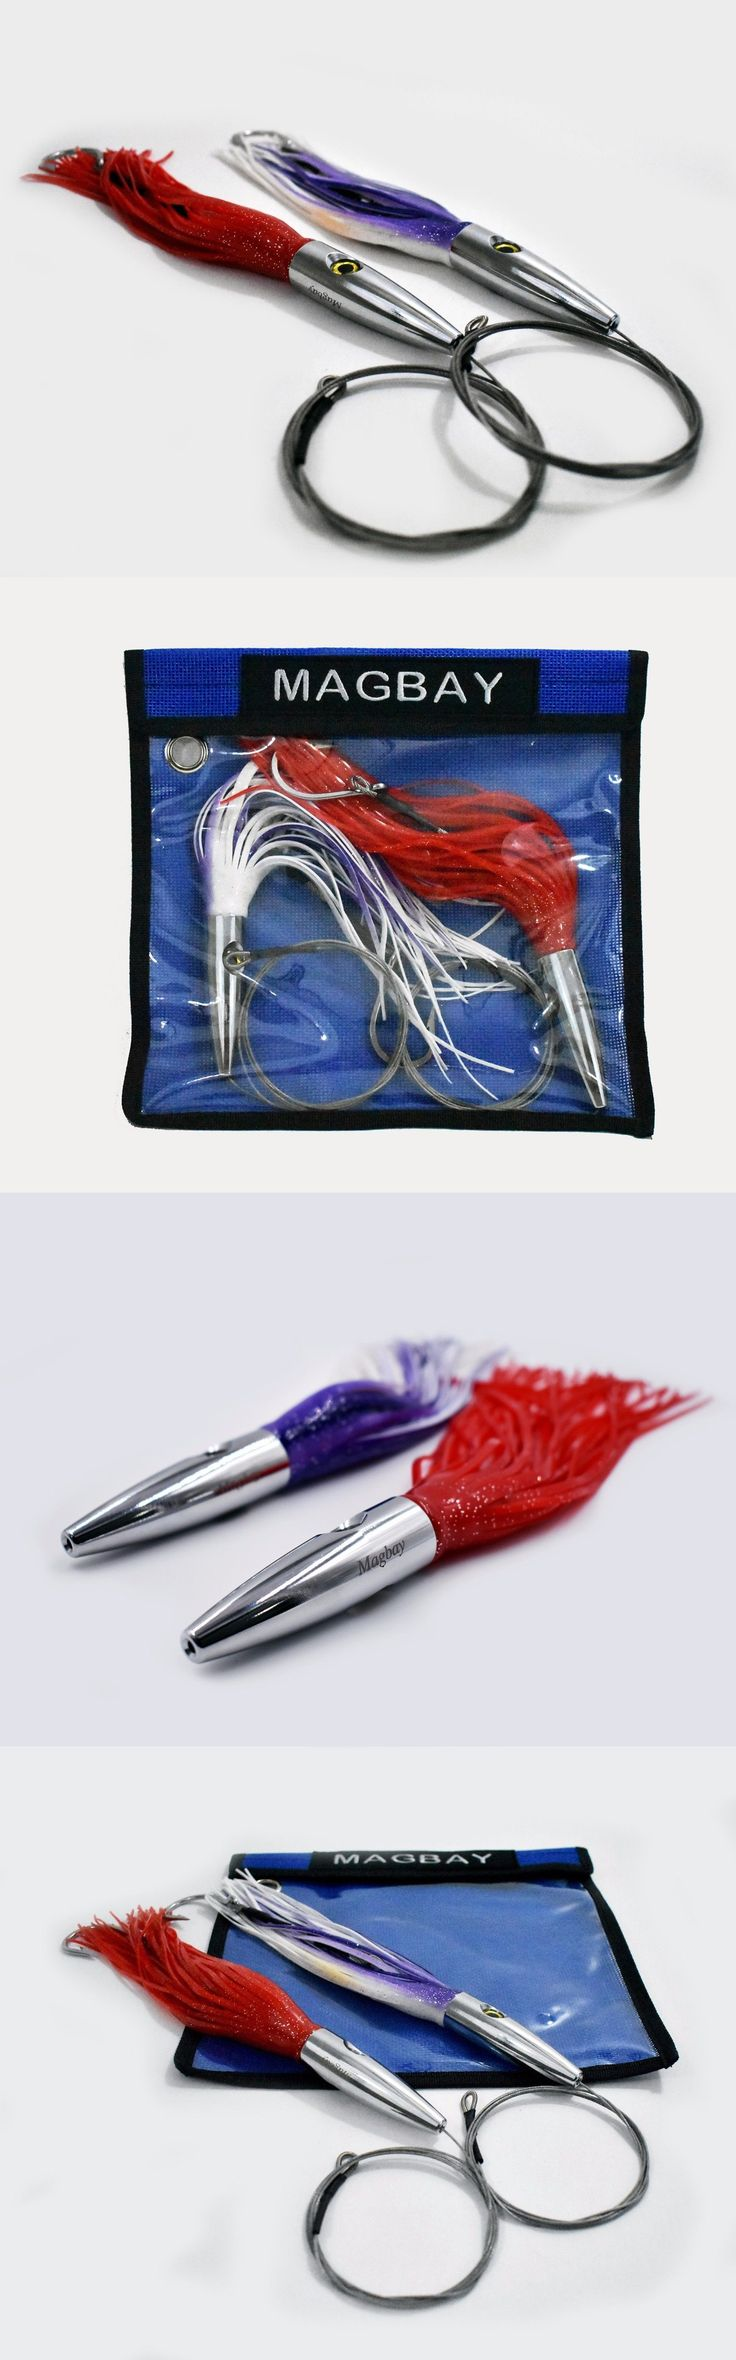 Saltwater Lures 36153: 2 Pack High Speed Skirted Wahoo And Tuna Lures Rigged 6 Ft 150 Lbs Leader + Bag -> BUY IT NOW ONLY: $44.95 on eBay!